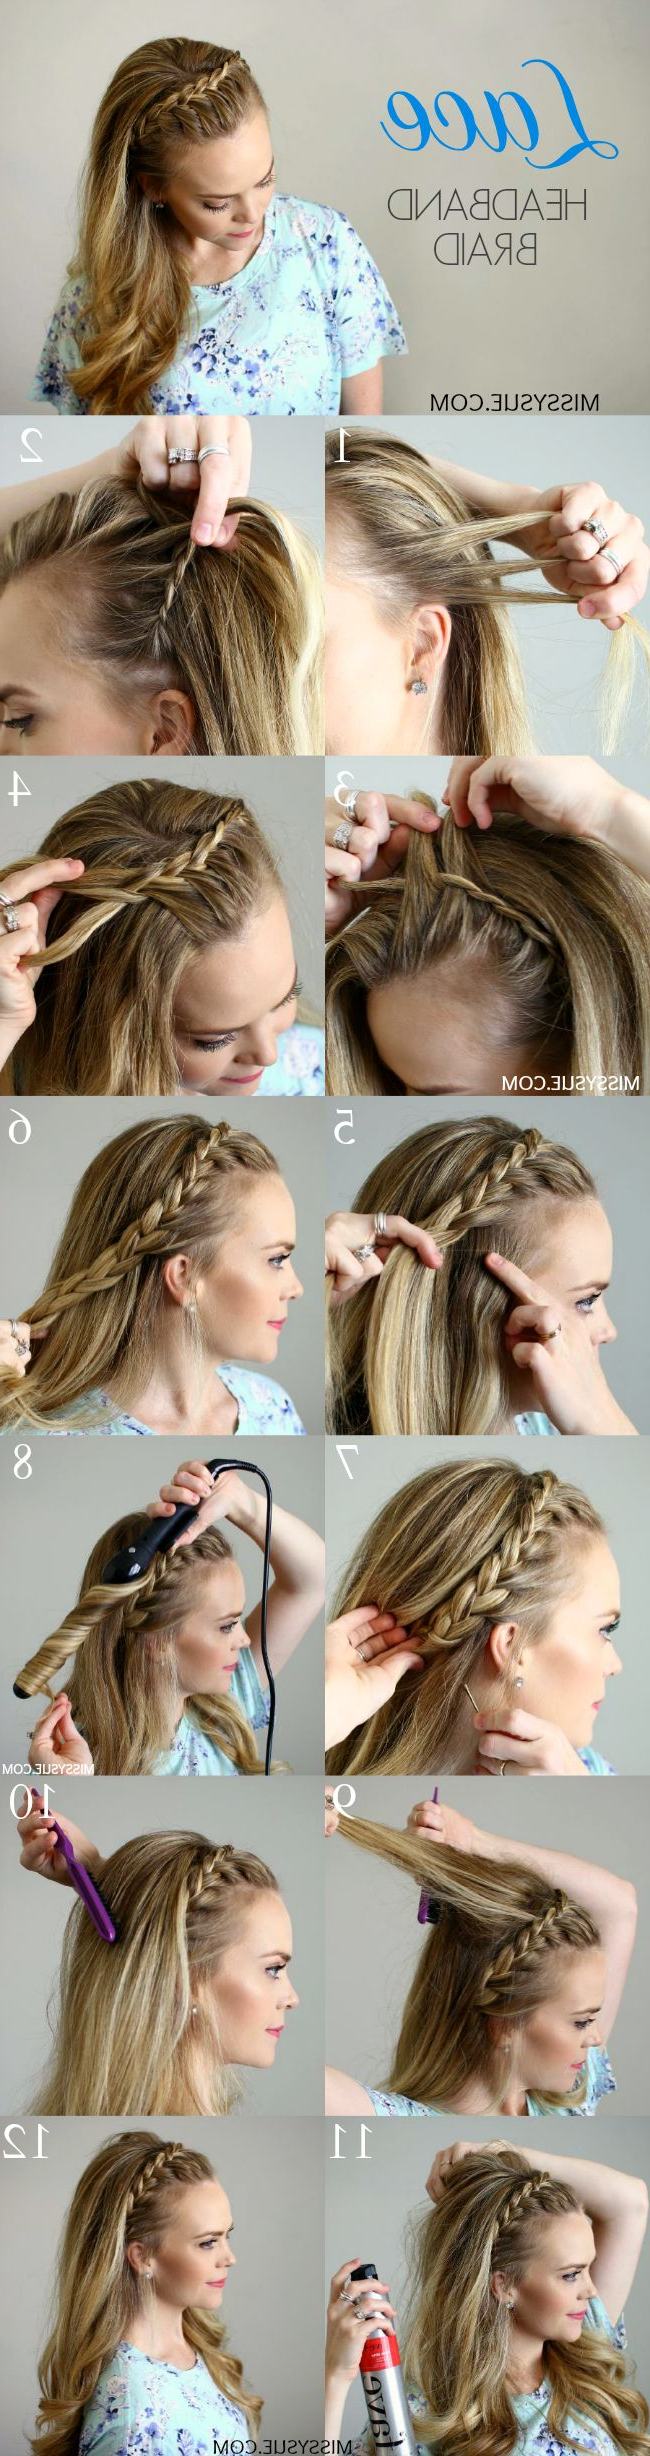 15 Stylish Mermaid Hairstyles To Pair Your Looks – Pretty Pertaining To Famous Mermaid Crown Braid Hairstyles (View 9 of 20)